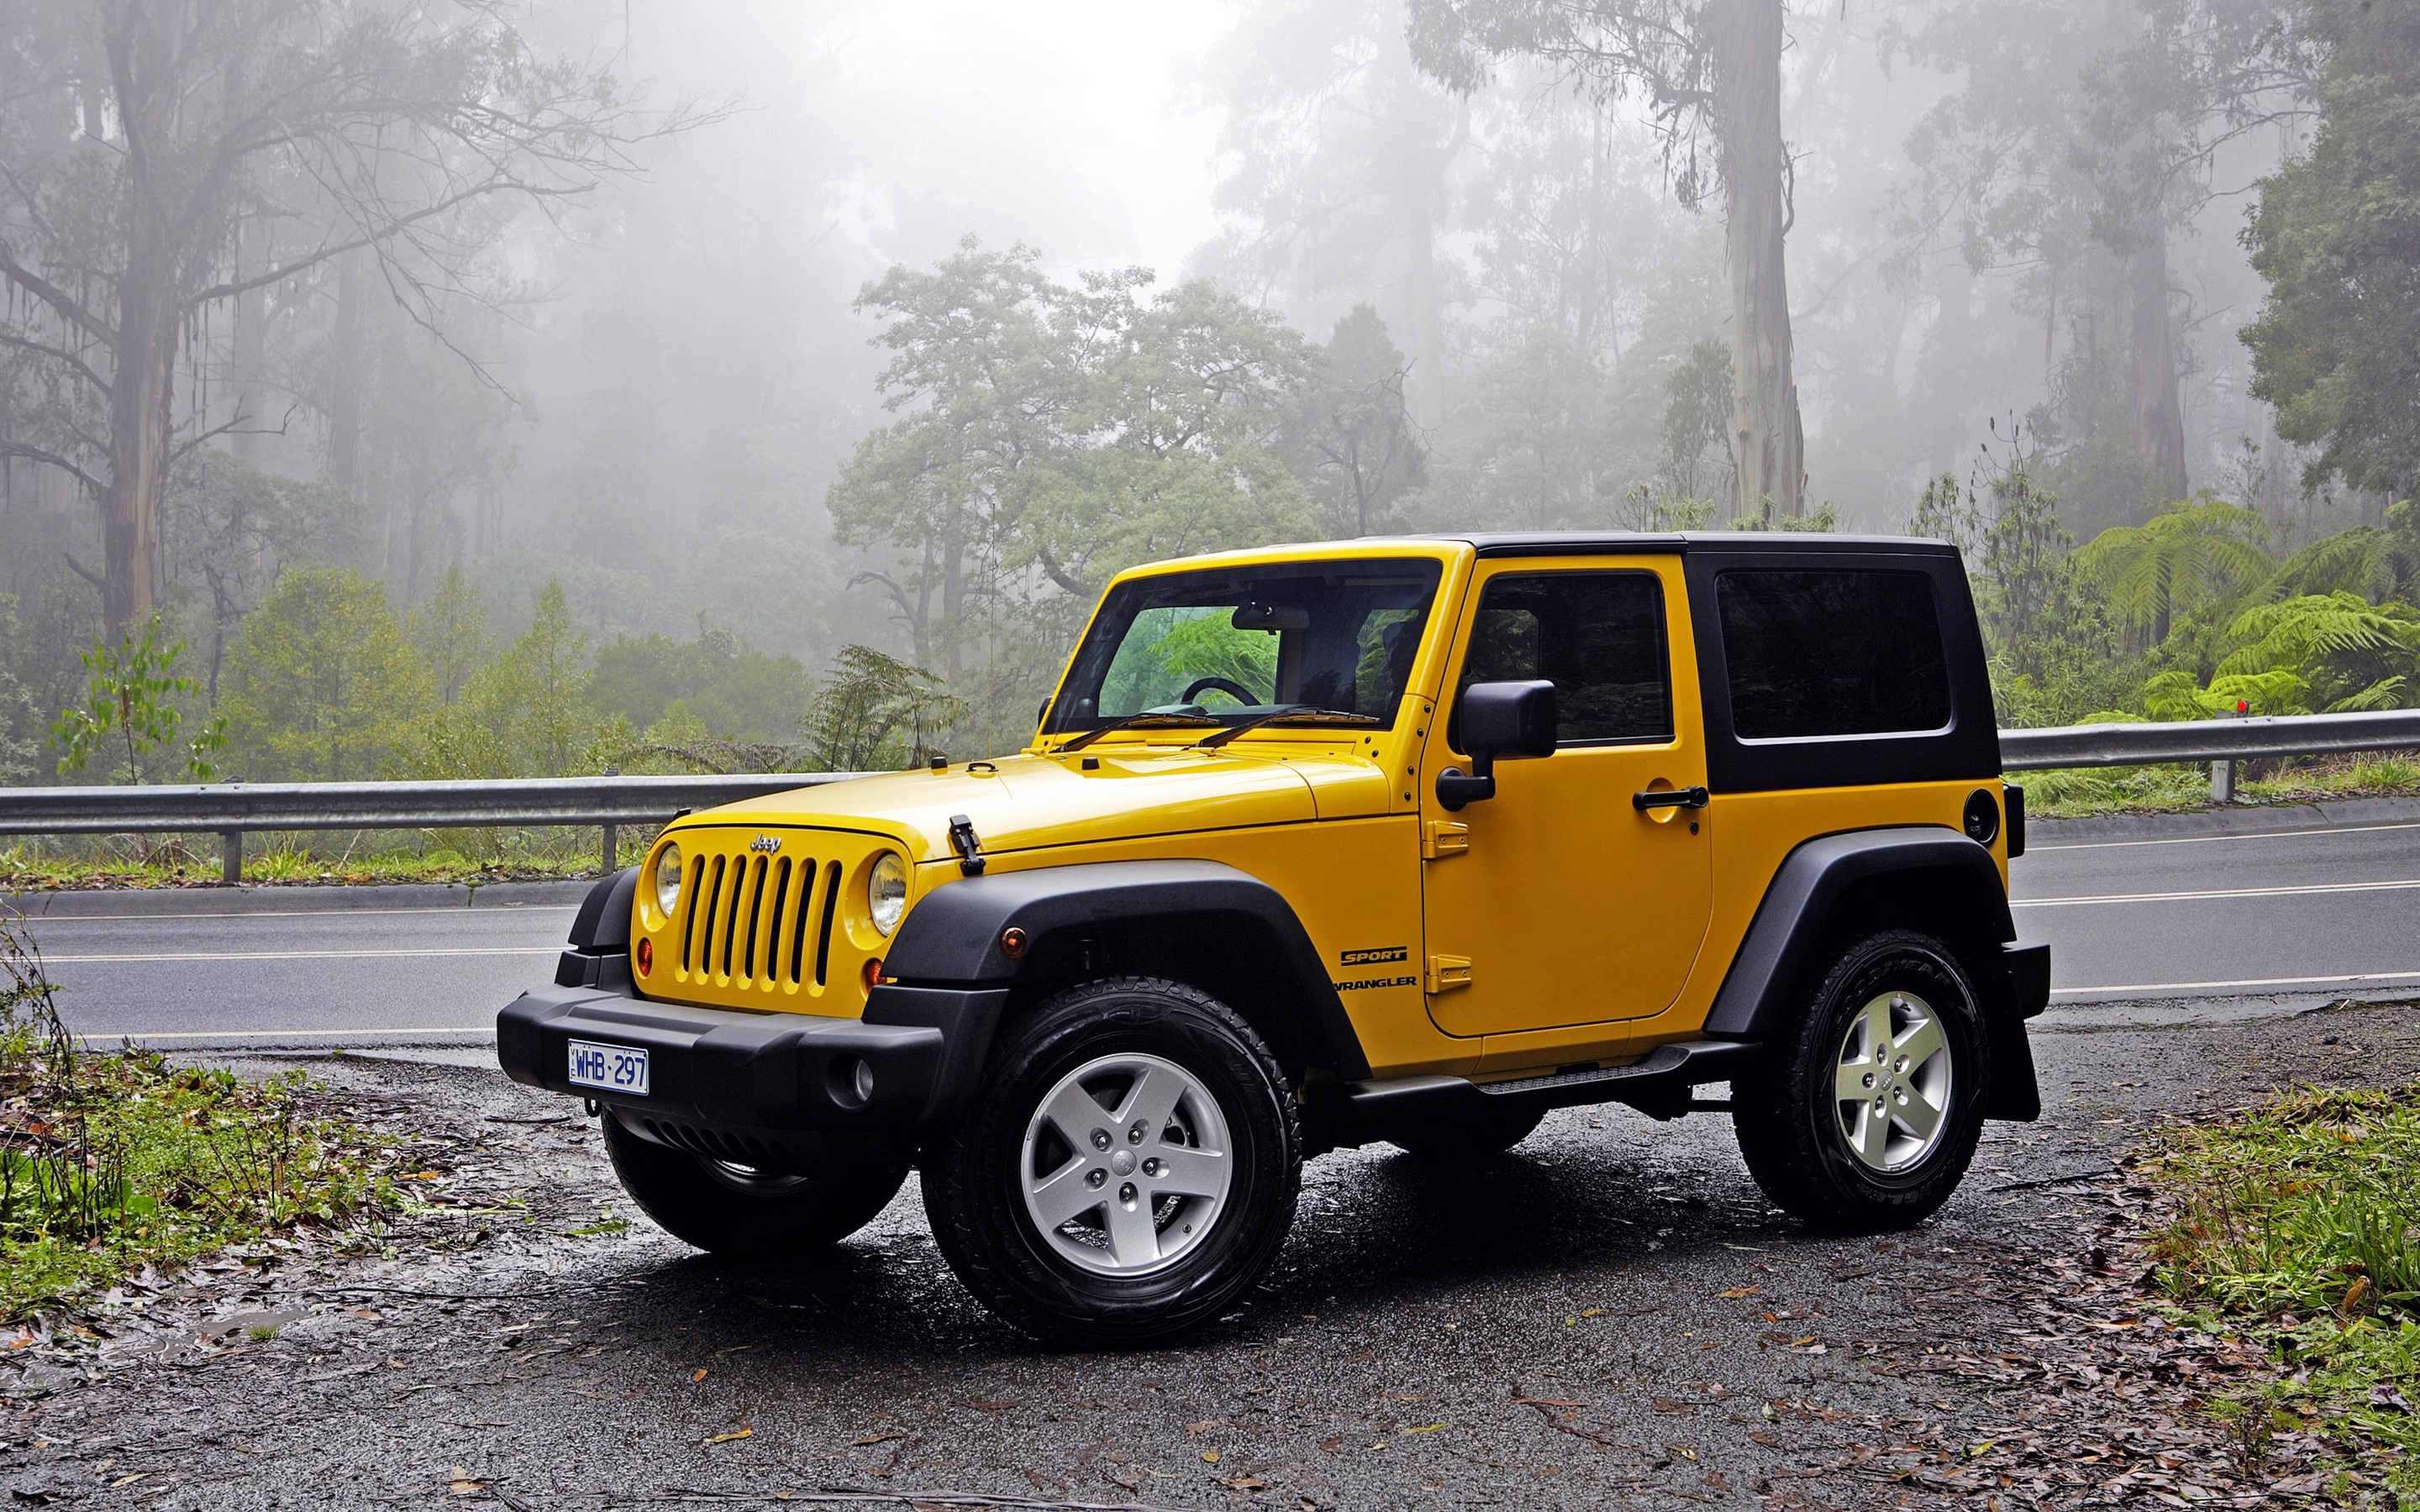 Wallpaper Jeep Wrangler Yellow Car 2880x1800 Hd Picture Image